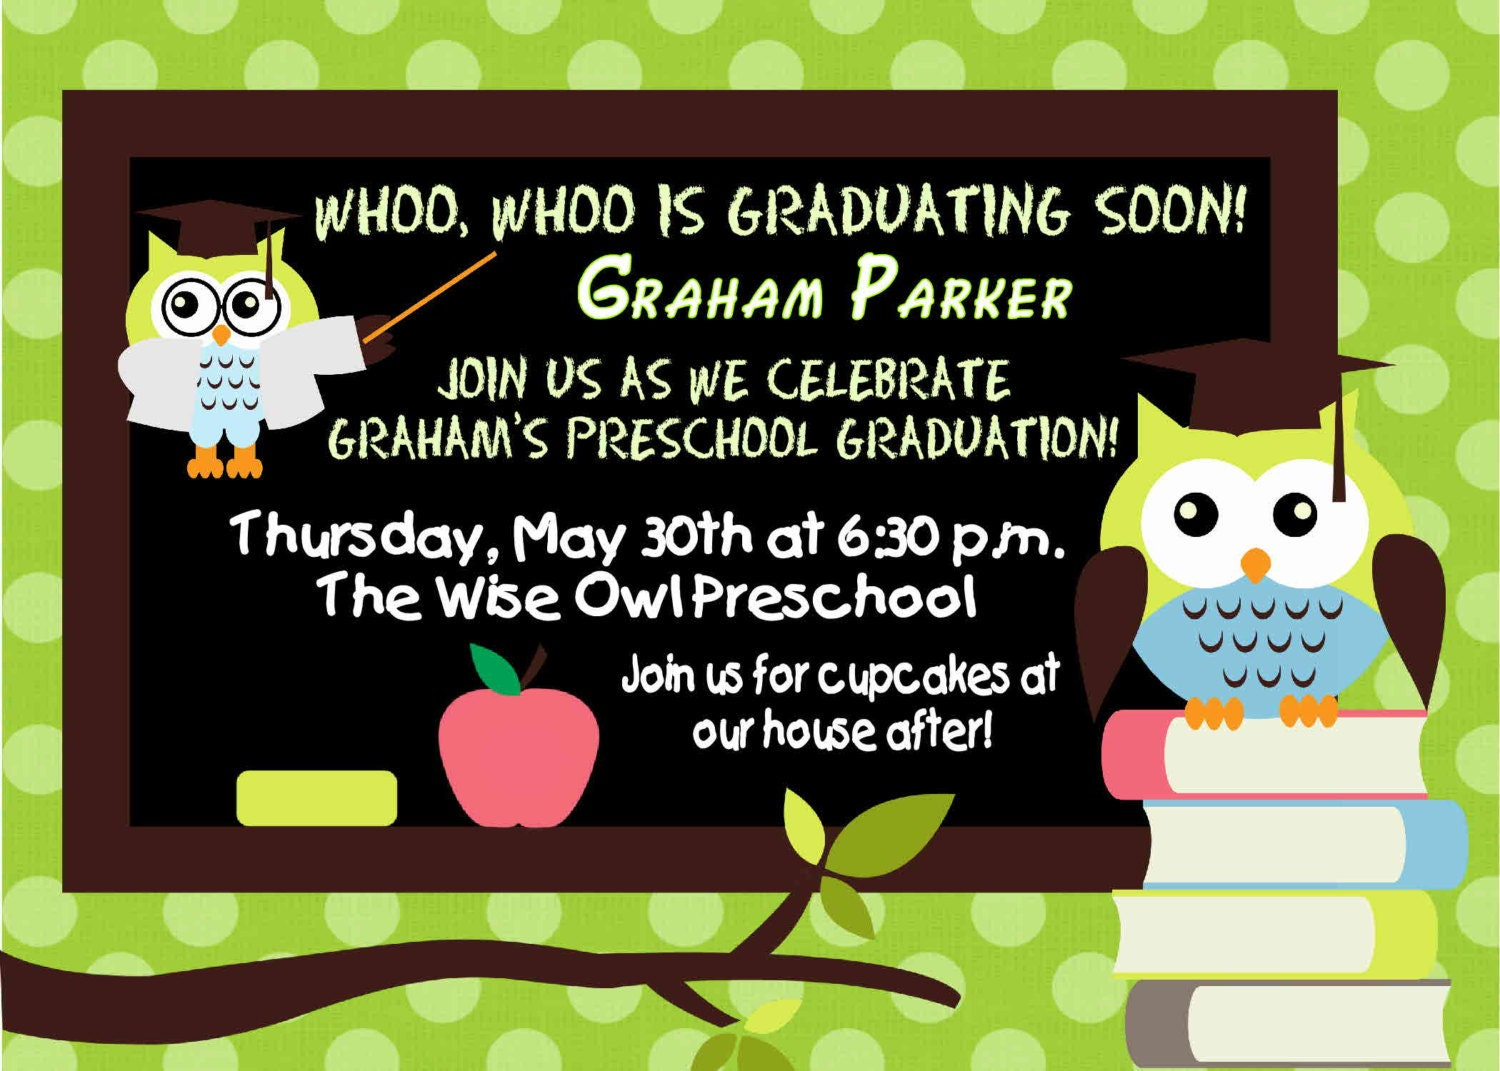 Kindergarten Graduation Invitation Wording is nice invitation example